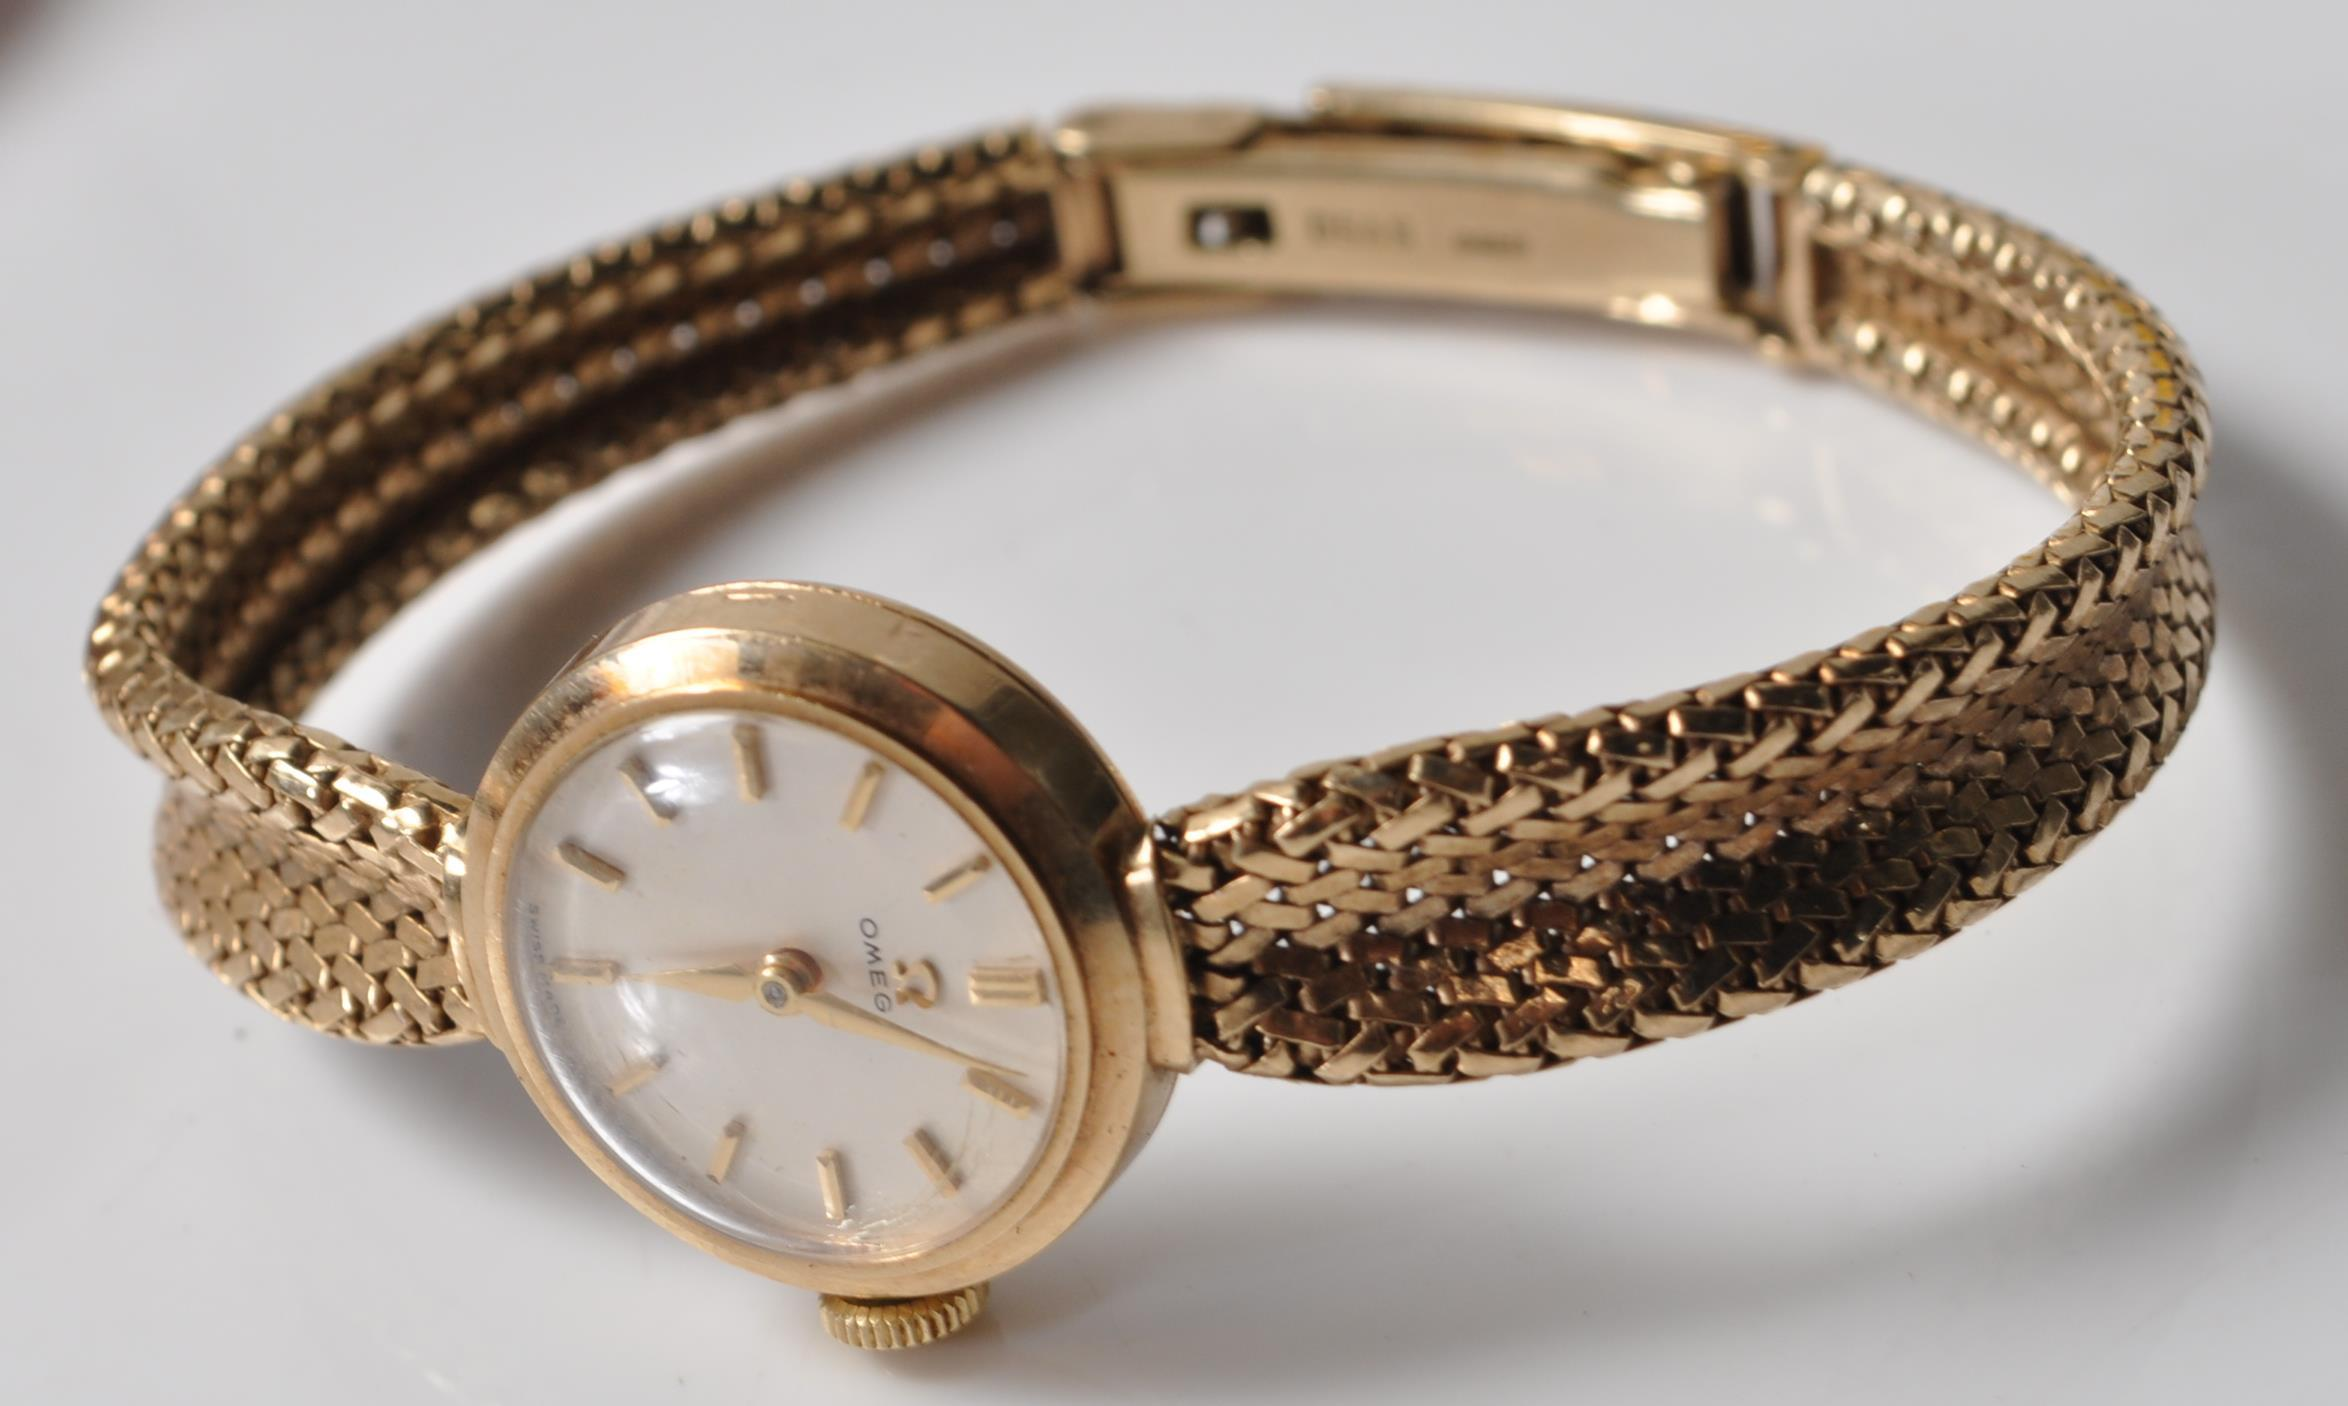 9CT GOLD OMEGA LADIES WATCH - Image 3 of 15